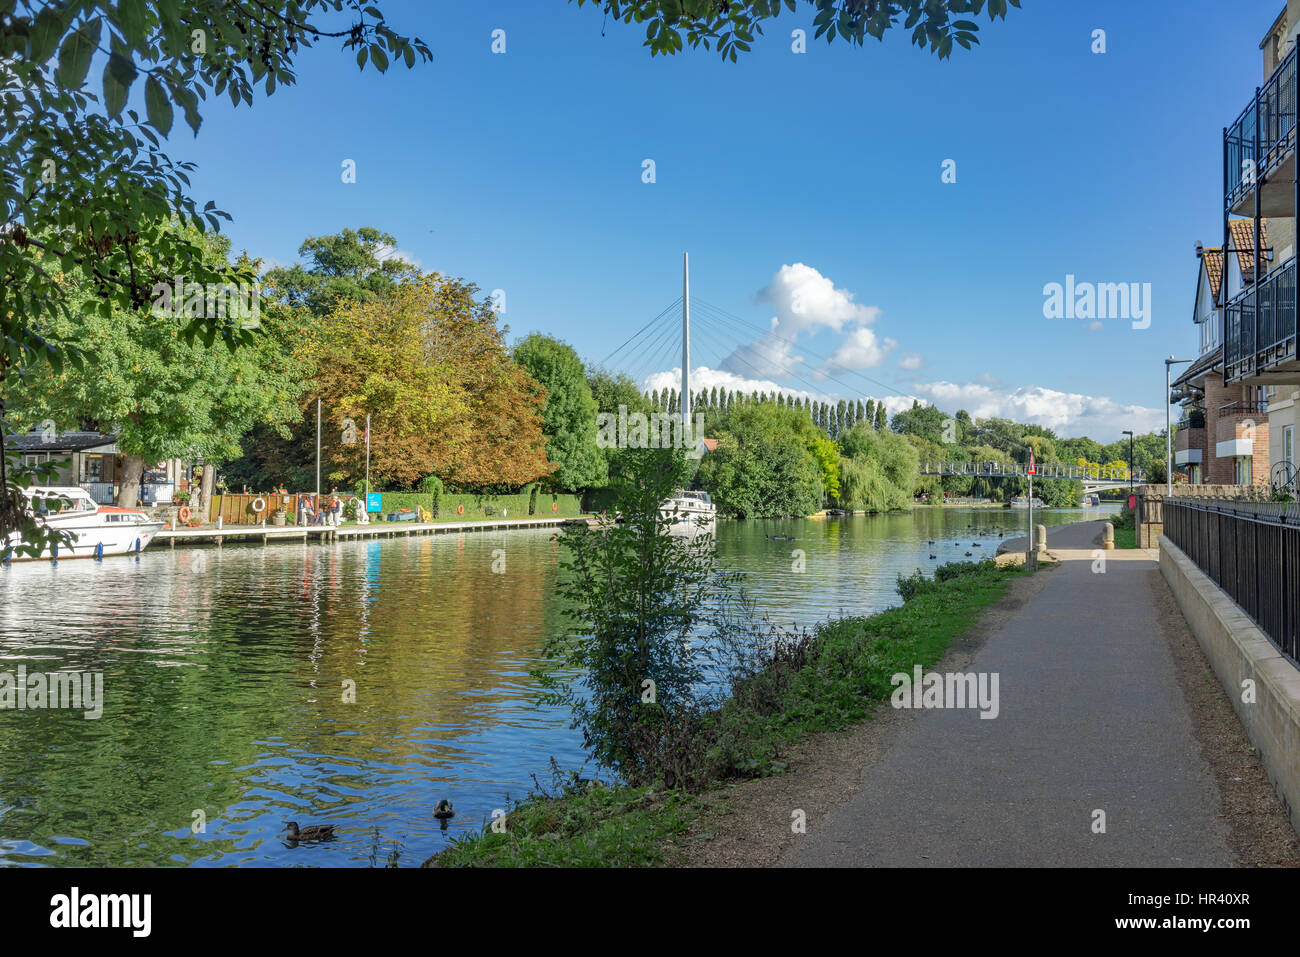 The River Thames at Reading in Berkshire - Stock Image